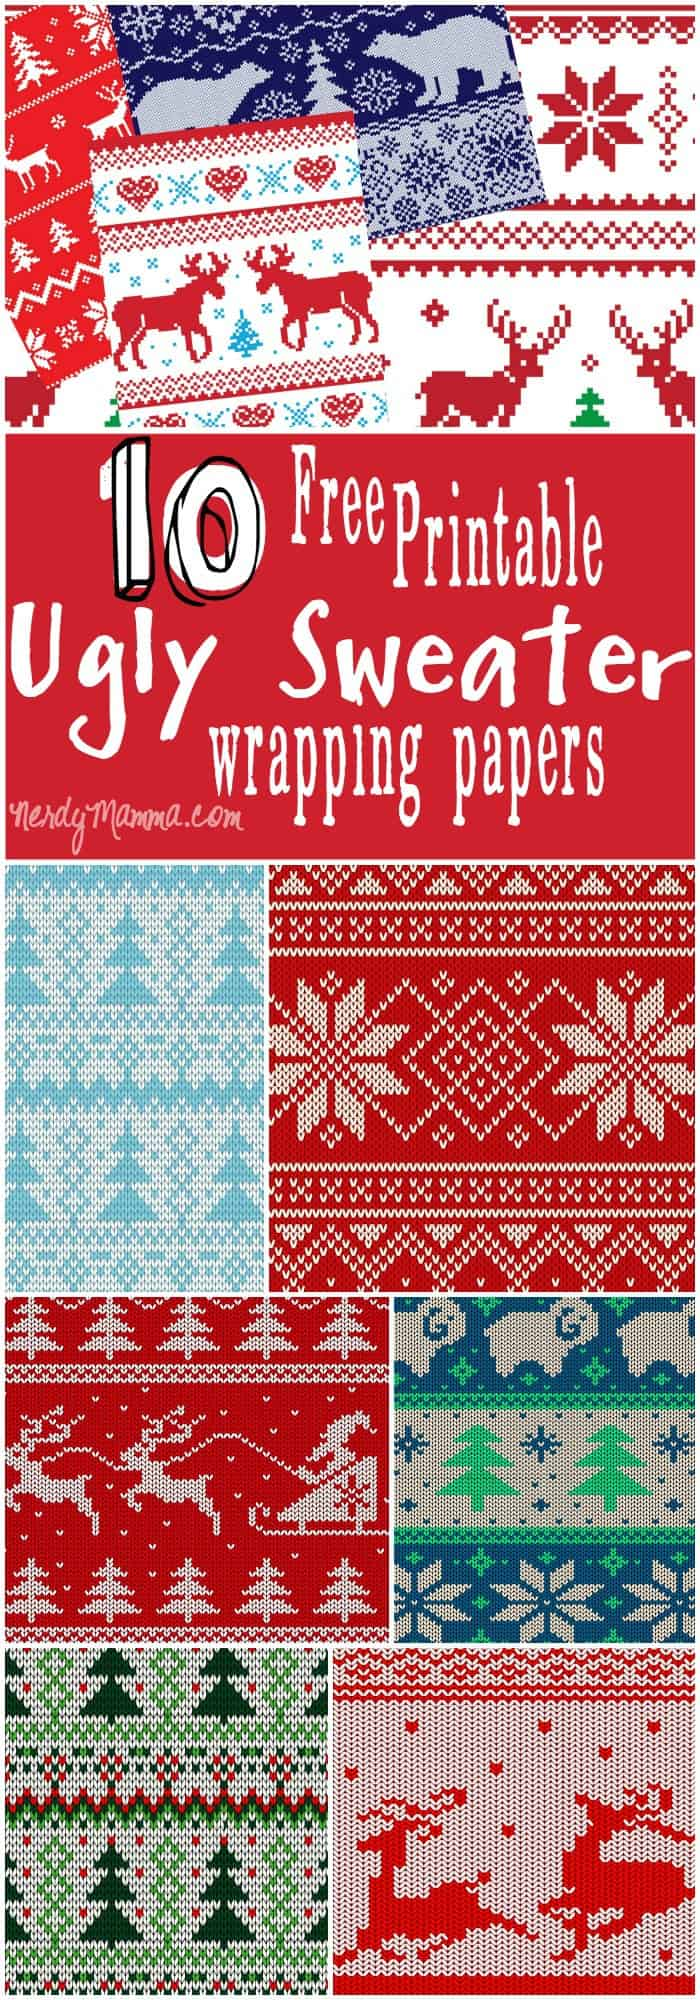 I think, for every present under our tree this year, I'm going to have ugly sweater wrapping on it! This is funny, fun, and kinda nerdy. I love it.